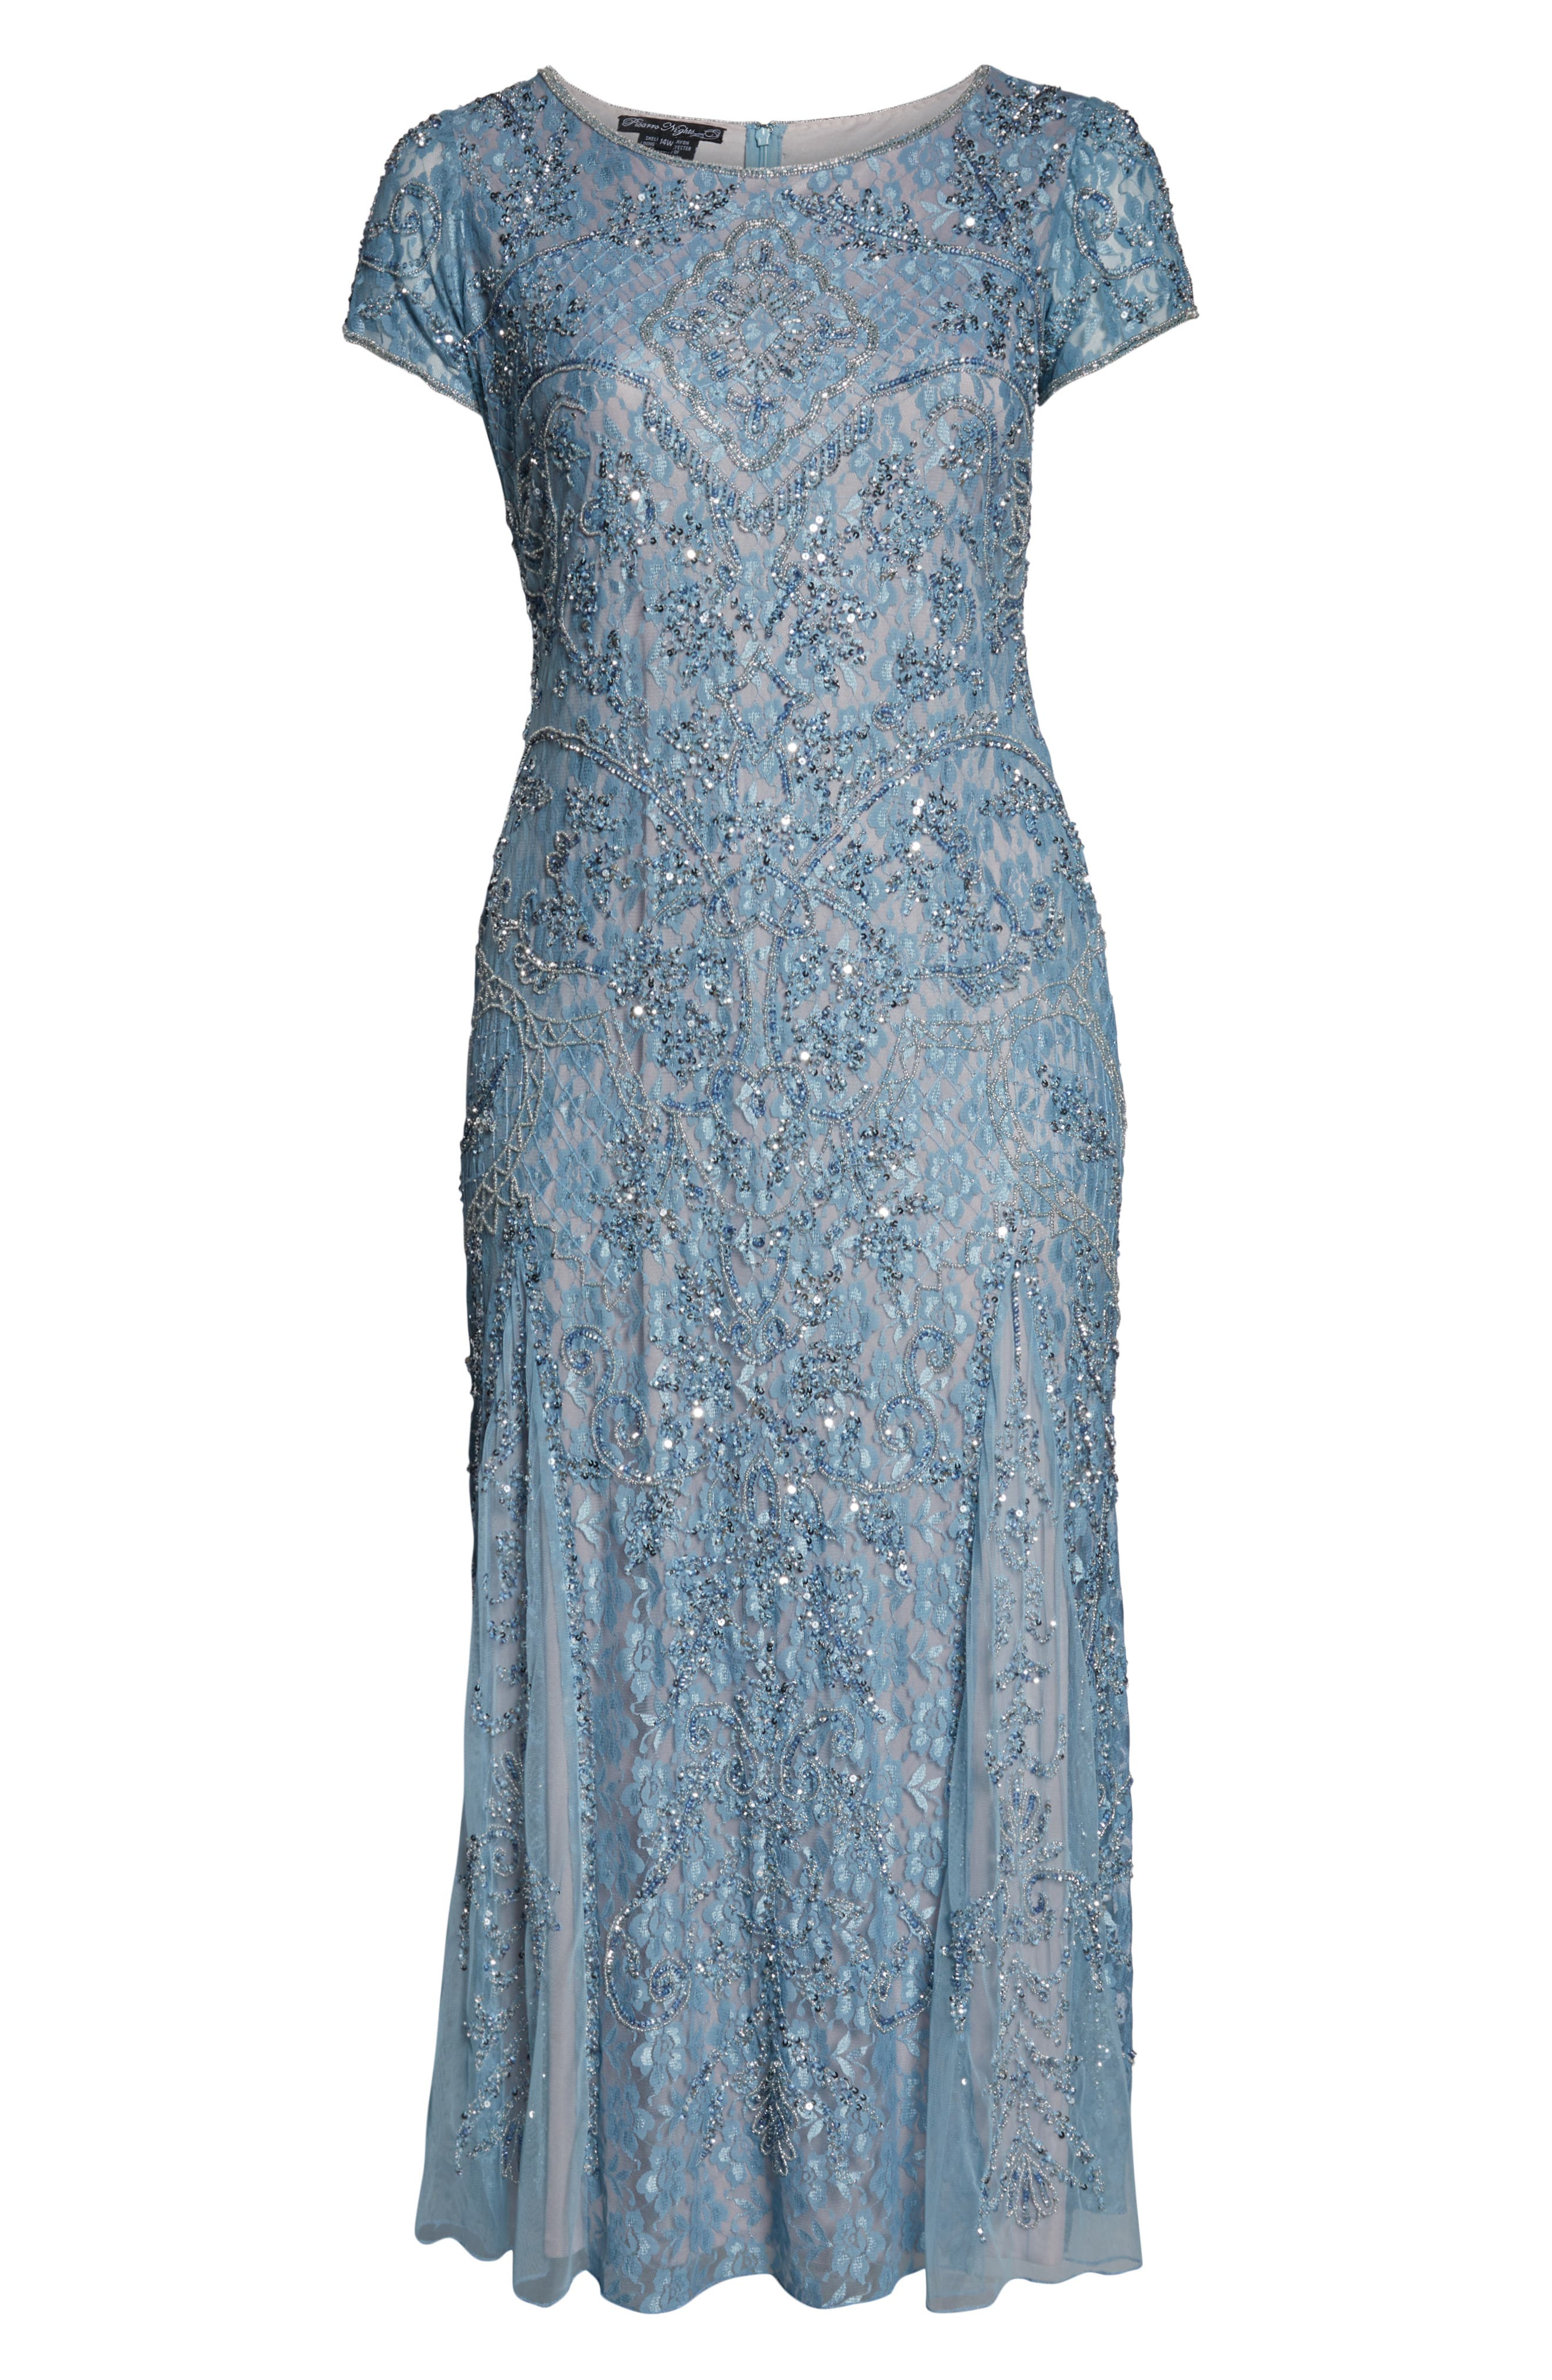 PISARRO NIGHTS,                             Embellished Lace A-Line Dress,                             Alternate thumbnail 7, color,                             SKY BLUE